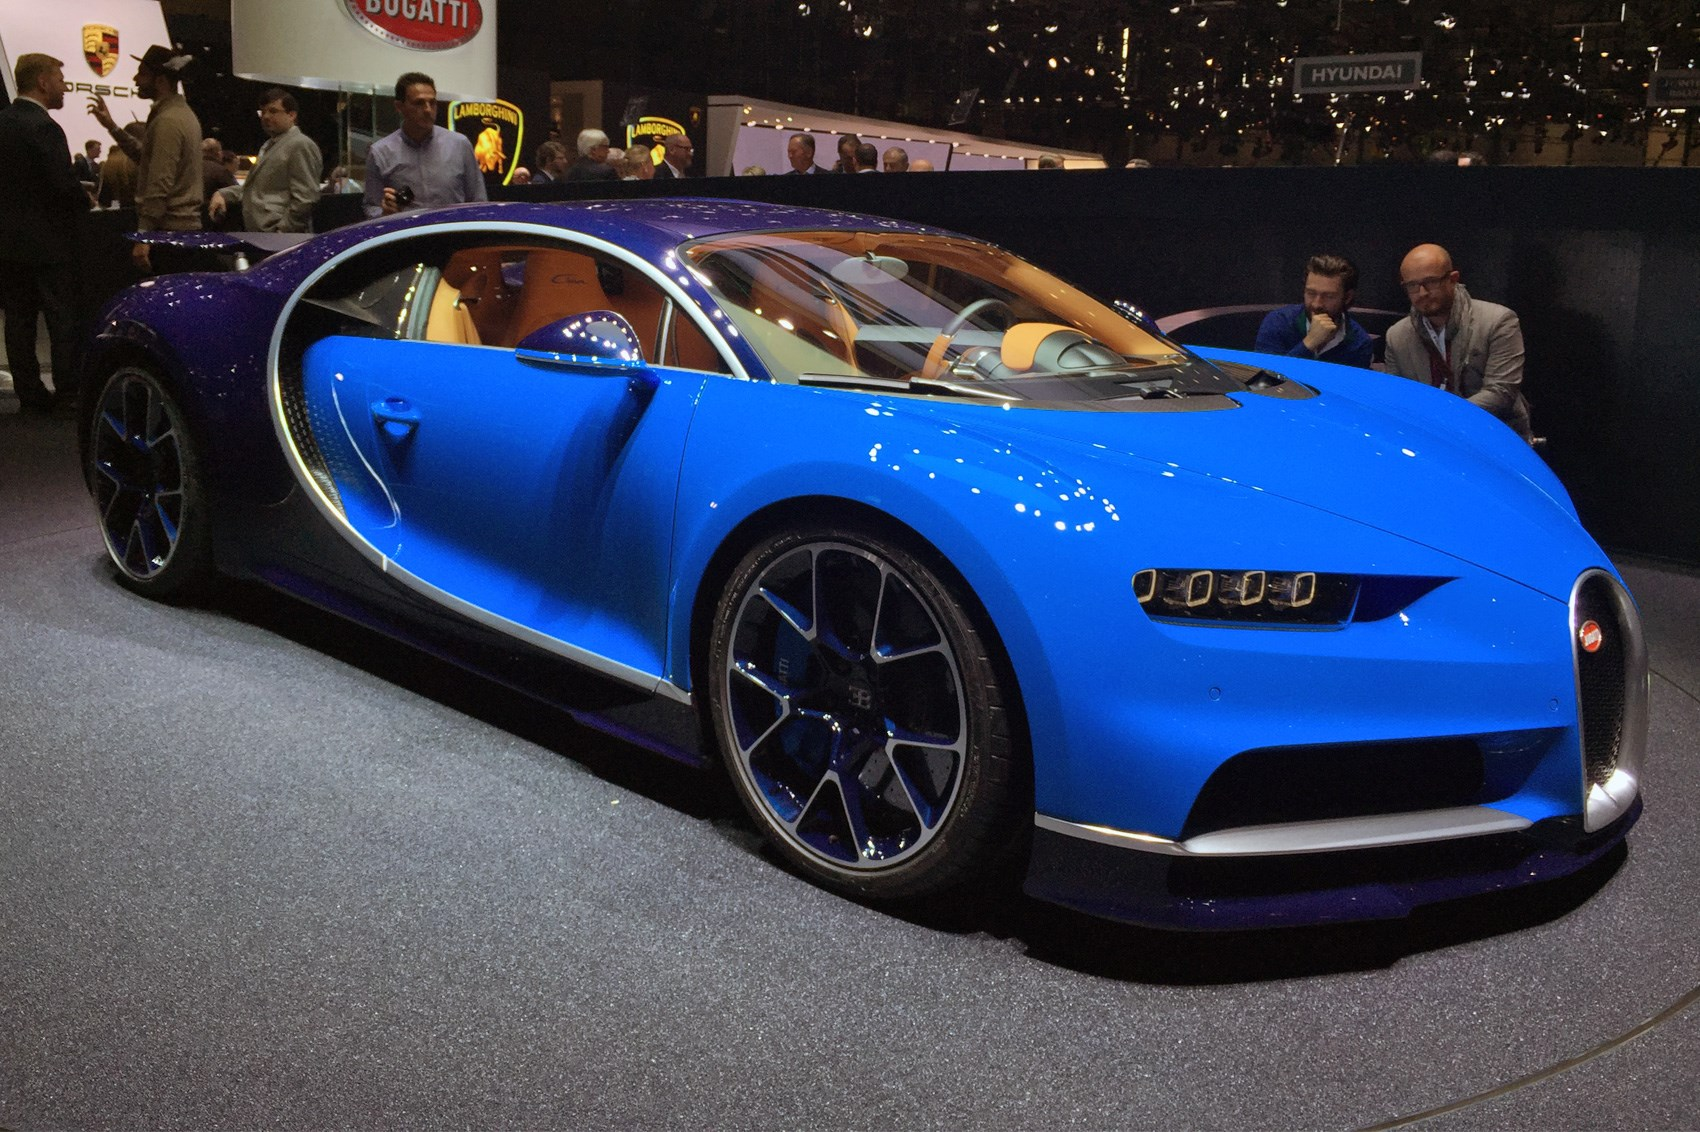 Ultrablogus  Nice Bugatti Is Go New Chiron Name Confirmed Here At Geneva  By  With Exquisite Bugatti Chiron Revealed At Geneva  The World Has A New Fastest Production Car With Delightful Gulfstream G Interior Photos Also Modified Car Interior In Addition Airbus A Xwb Interior And Chinook Interior As Well As Typhoon Class Submarine Interior Additionally I Interior  View From Carmagazinecouk With Ultrablogus  Exquisite Bugatti Is Go New Chiron Name Confirmed Here At Geneva  By  With Delightful Bugatti Chiron Revealed At Geneva  The World Has A New Fastest Production Car And Nice Gulfstream G Interior Photos Also Modified Car Interior In Addition Airbus A Xwb Interior From Carmagazinecouk